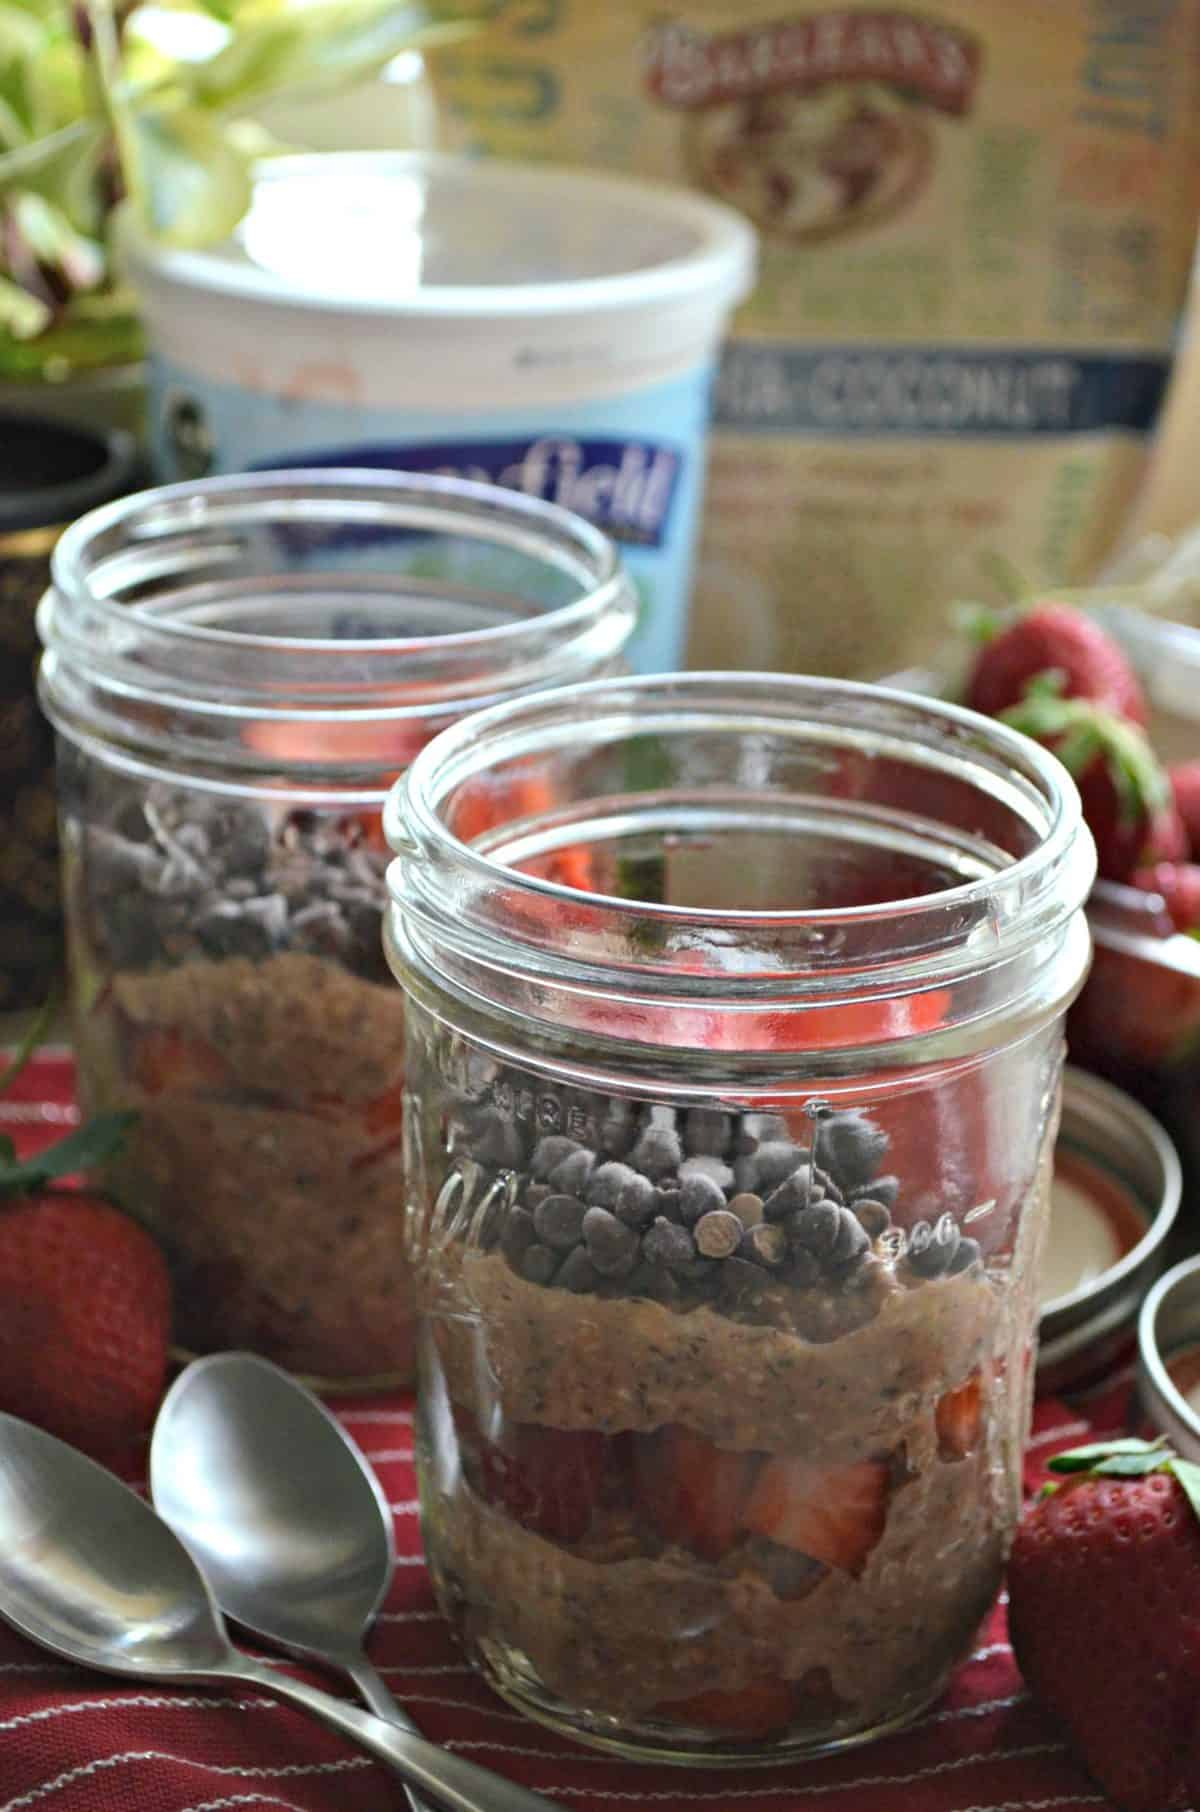 2 glass jars of layered oats, chocolate chips, and sliced strawberries with yogurt container in background.